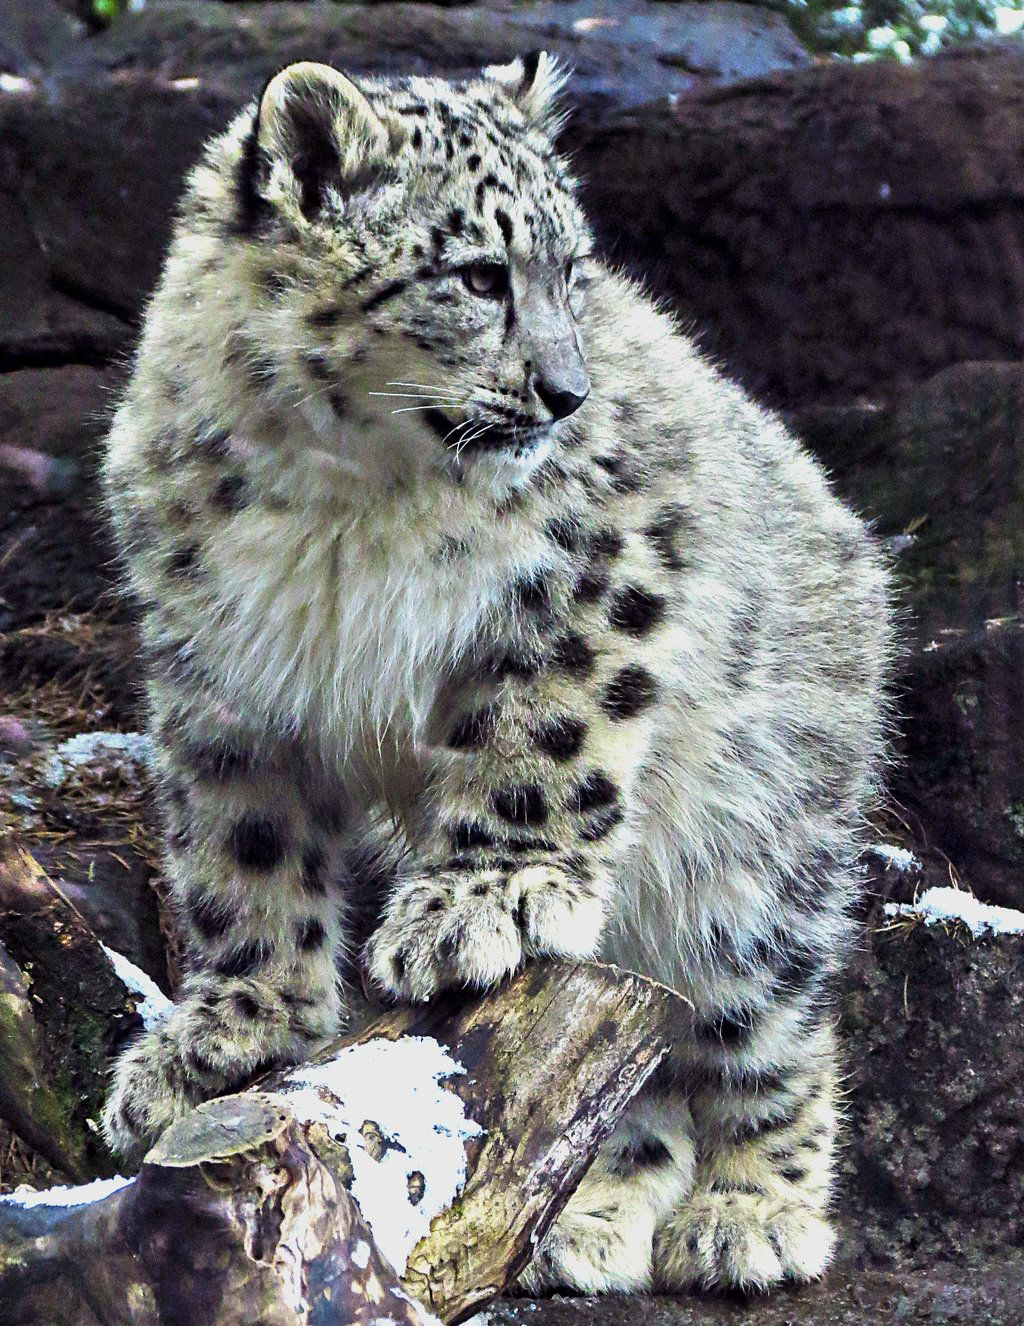 Month Old Male Snow Leopard Cub Born At The Rosamond Gifford Zoo In Syracuse Ny Back In Feel Free To Use As A Reference Or As Stock For Photo M